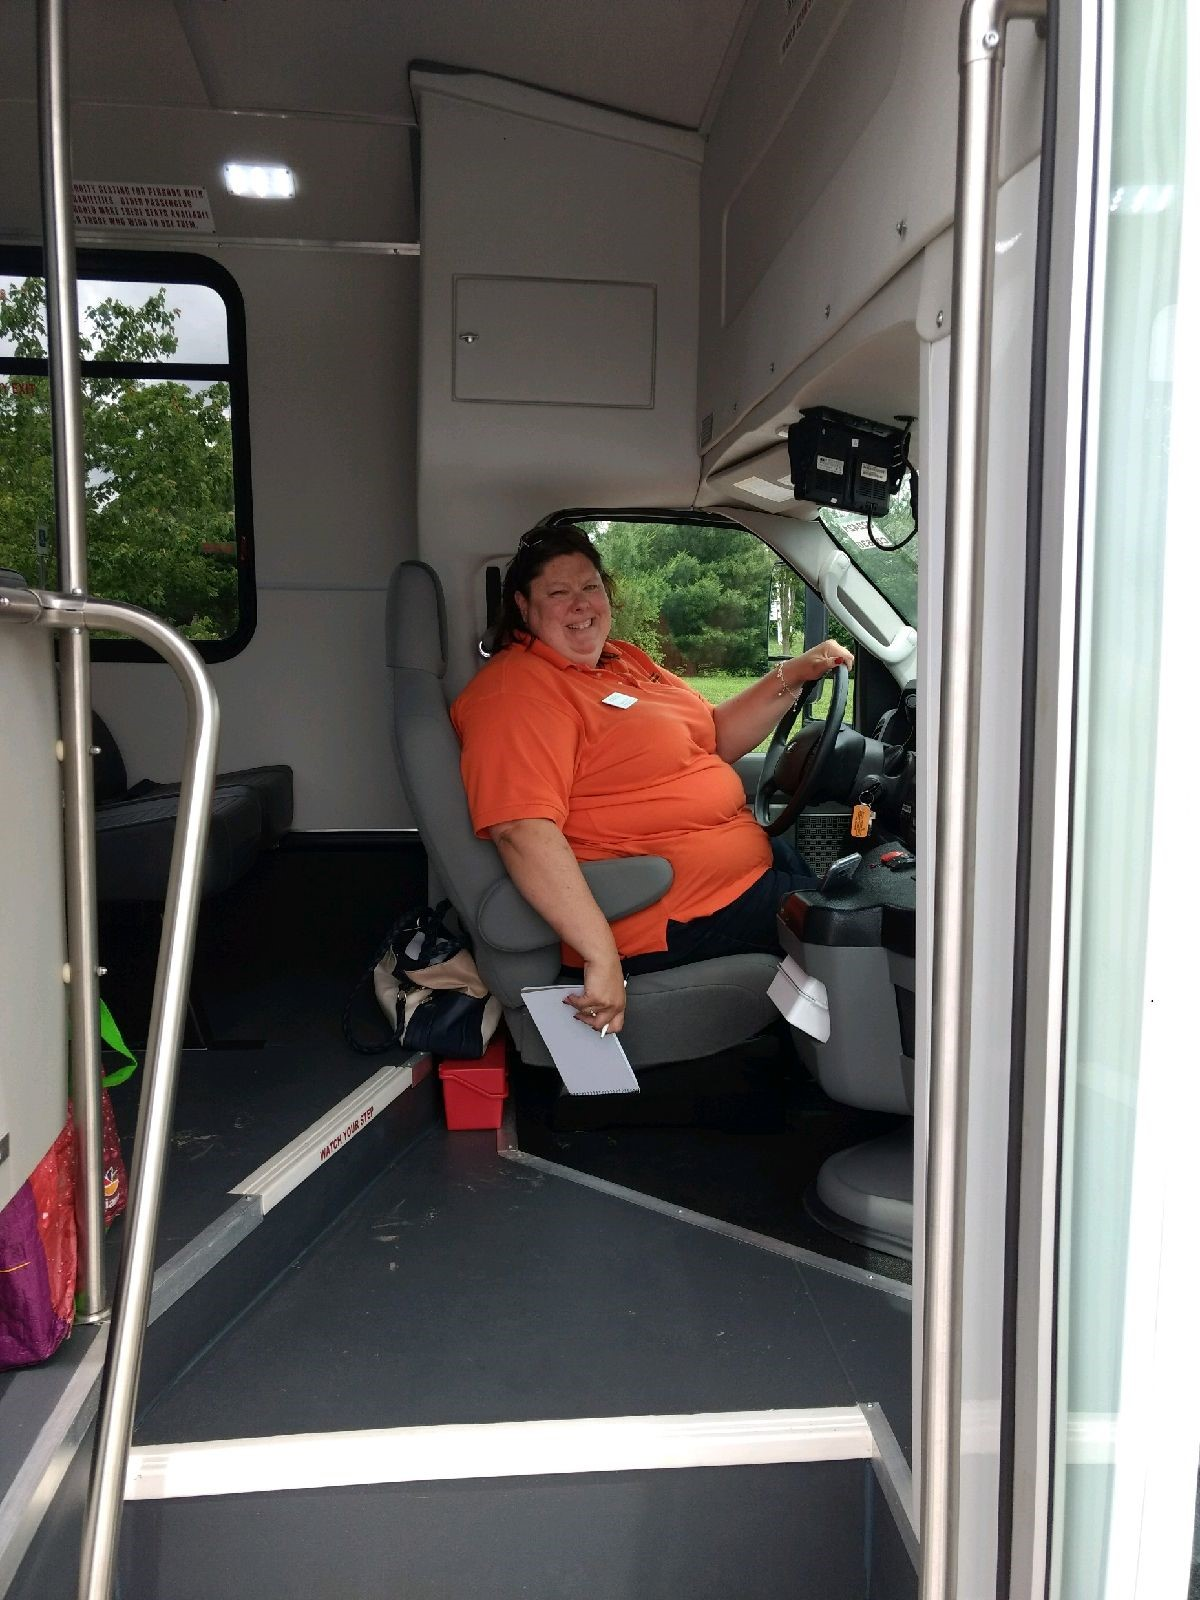 Stacy bus driver